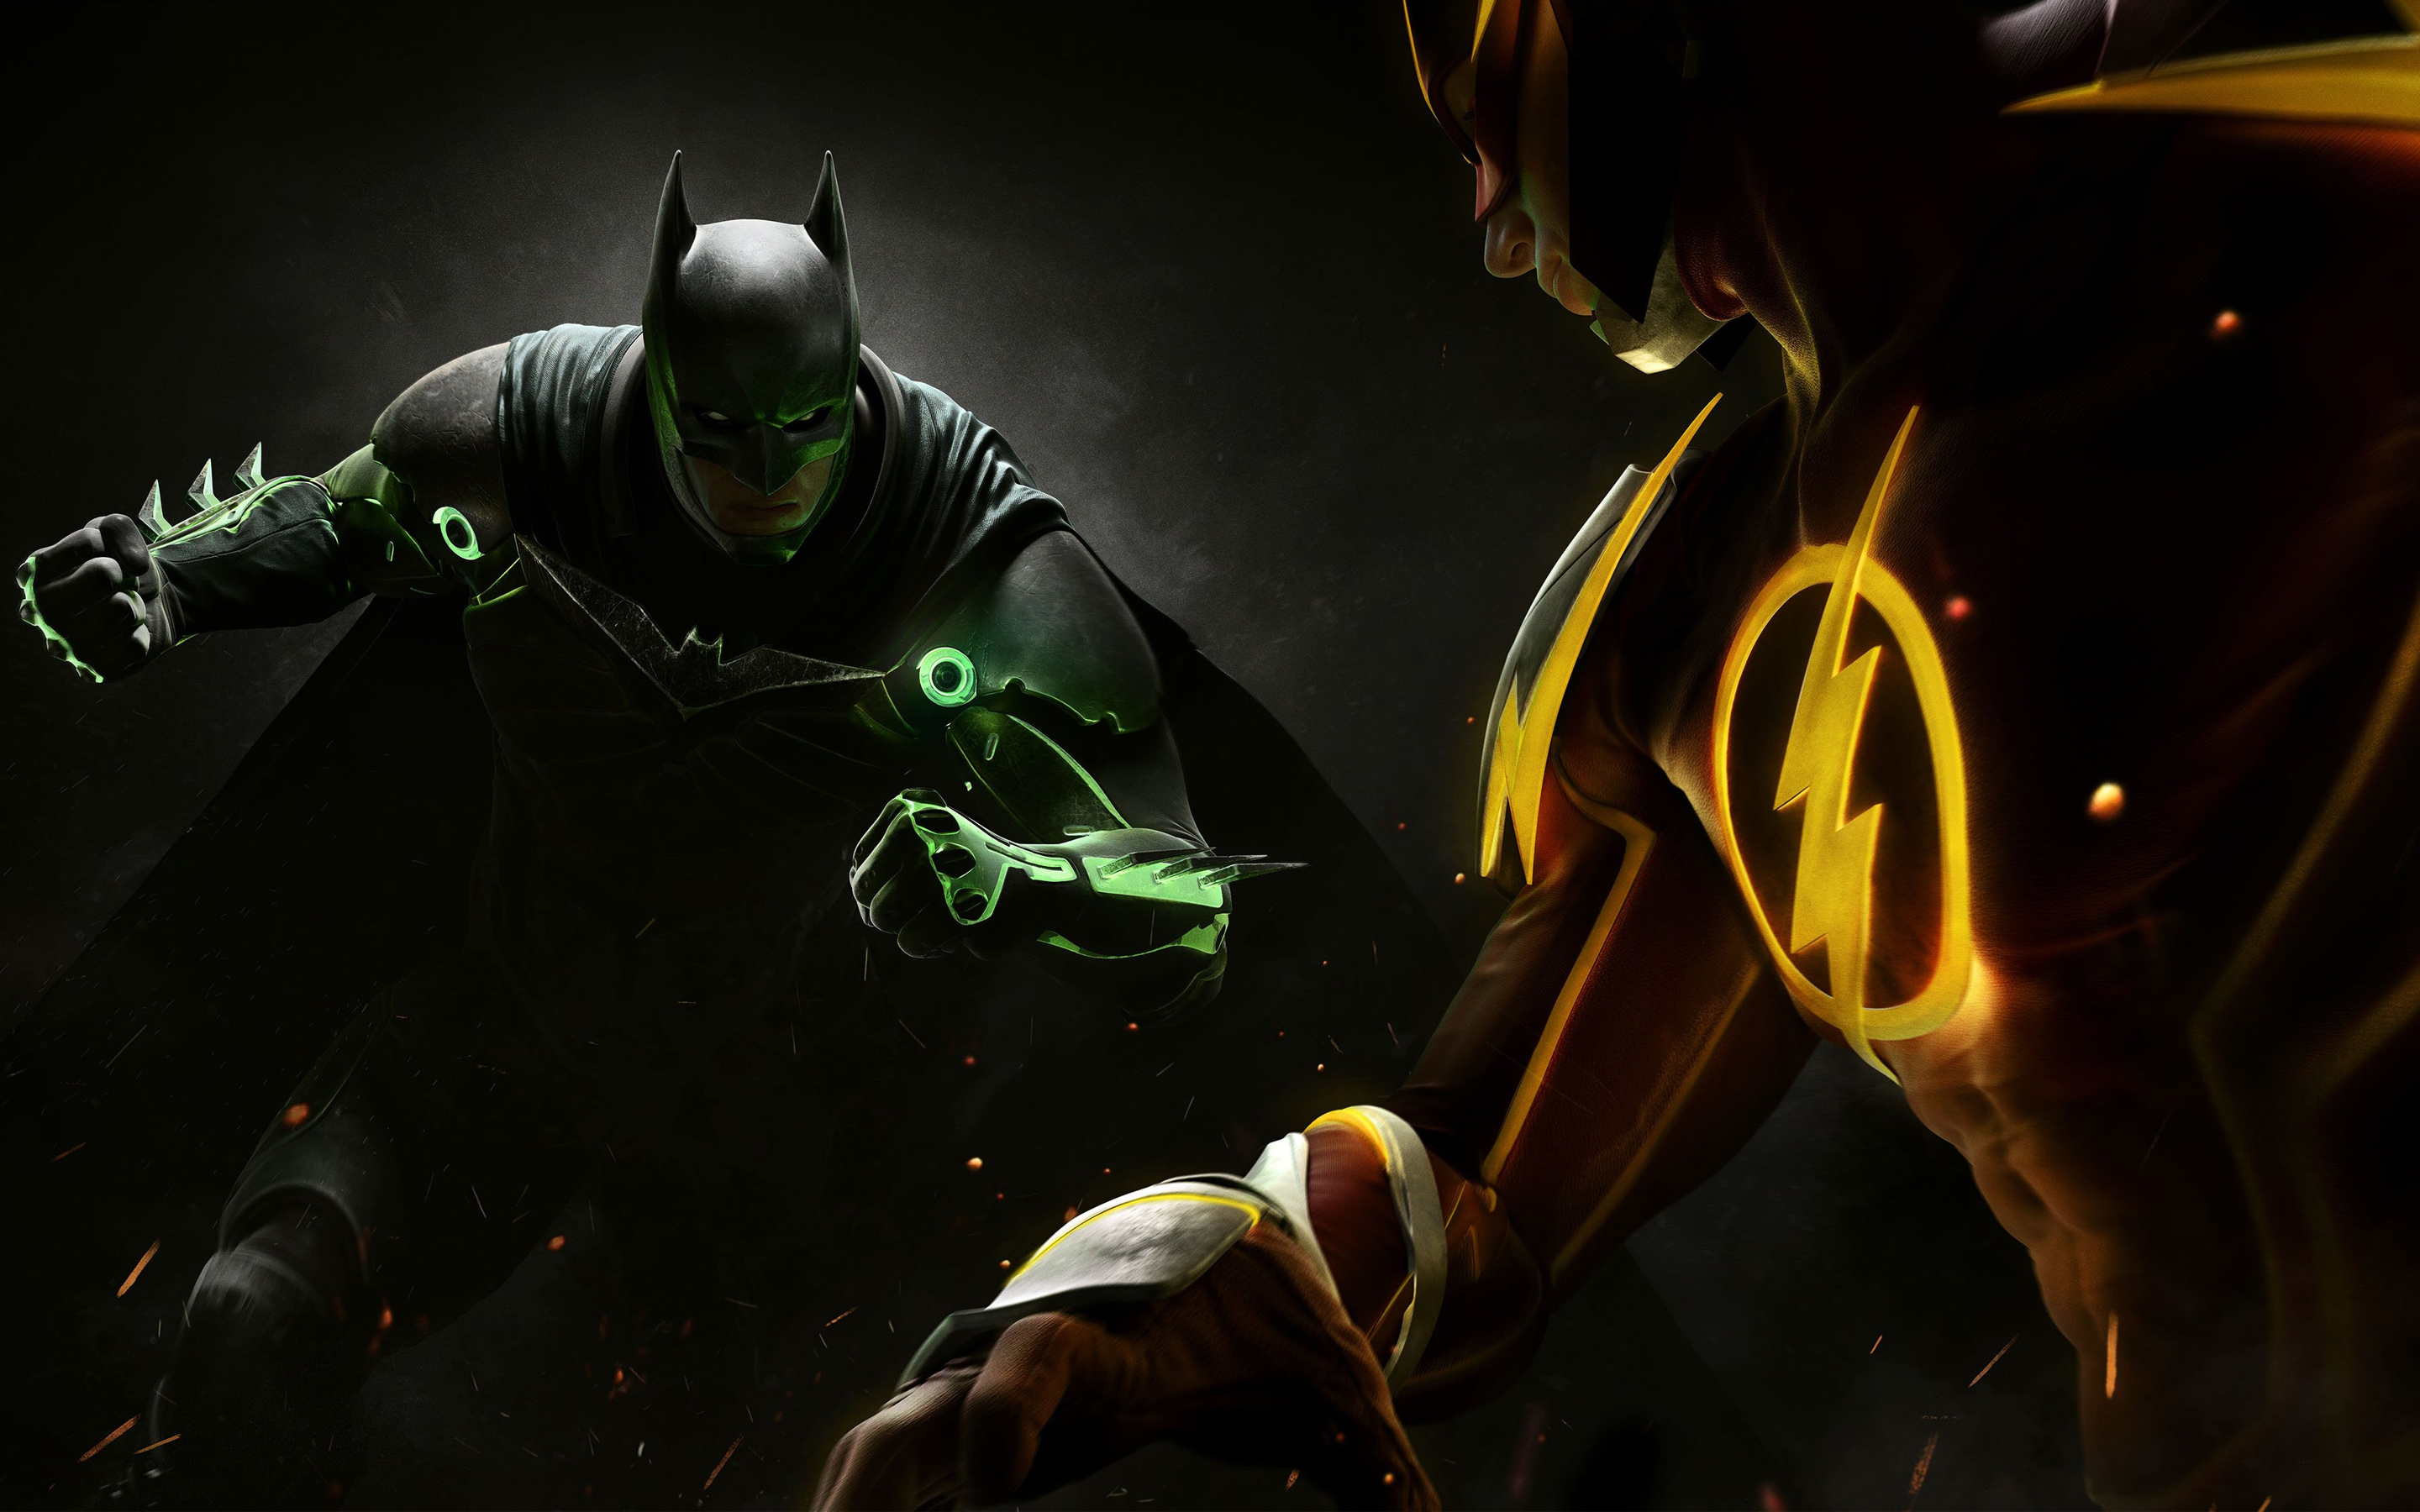 Injustice ios matchmaking